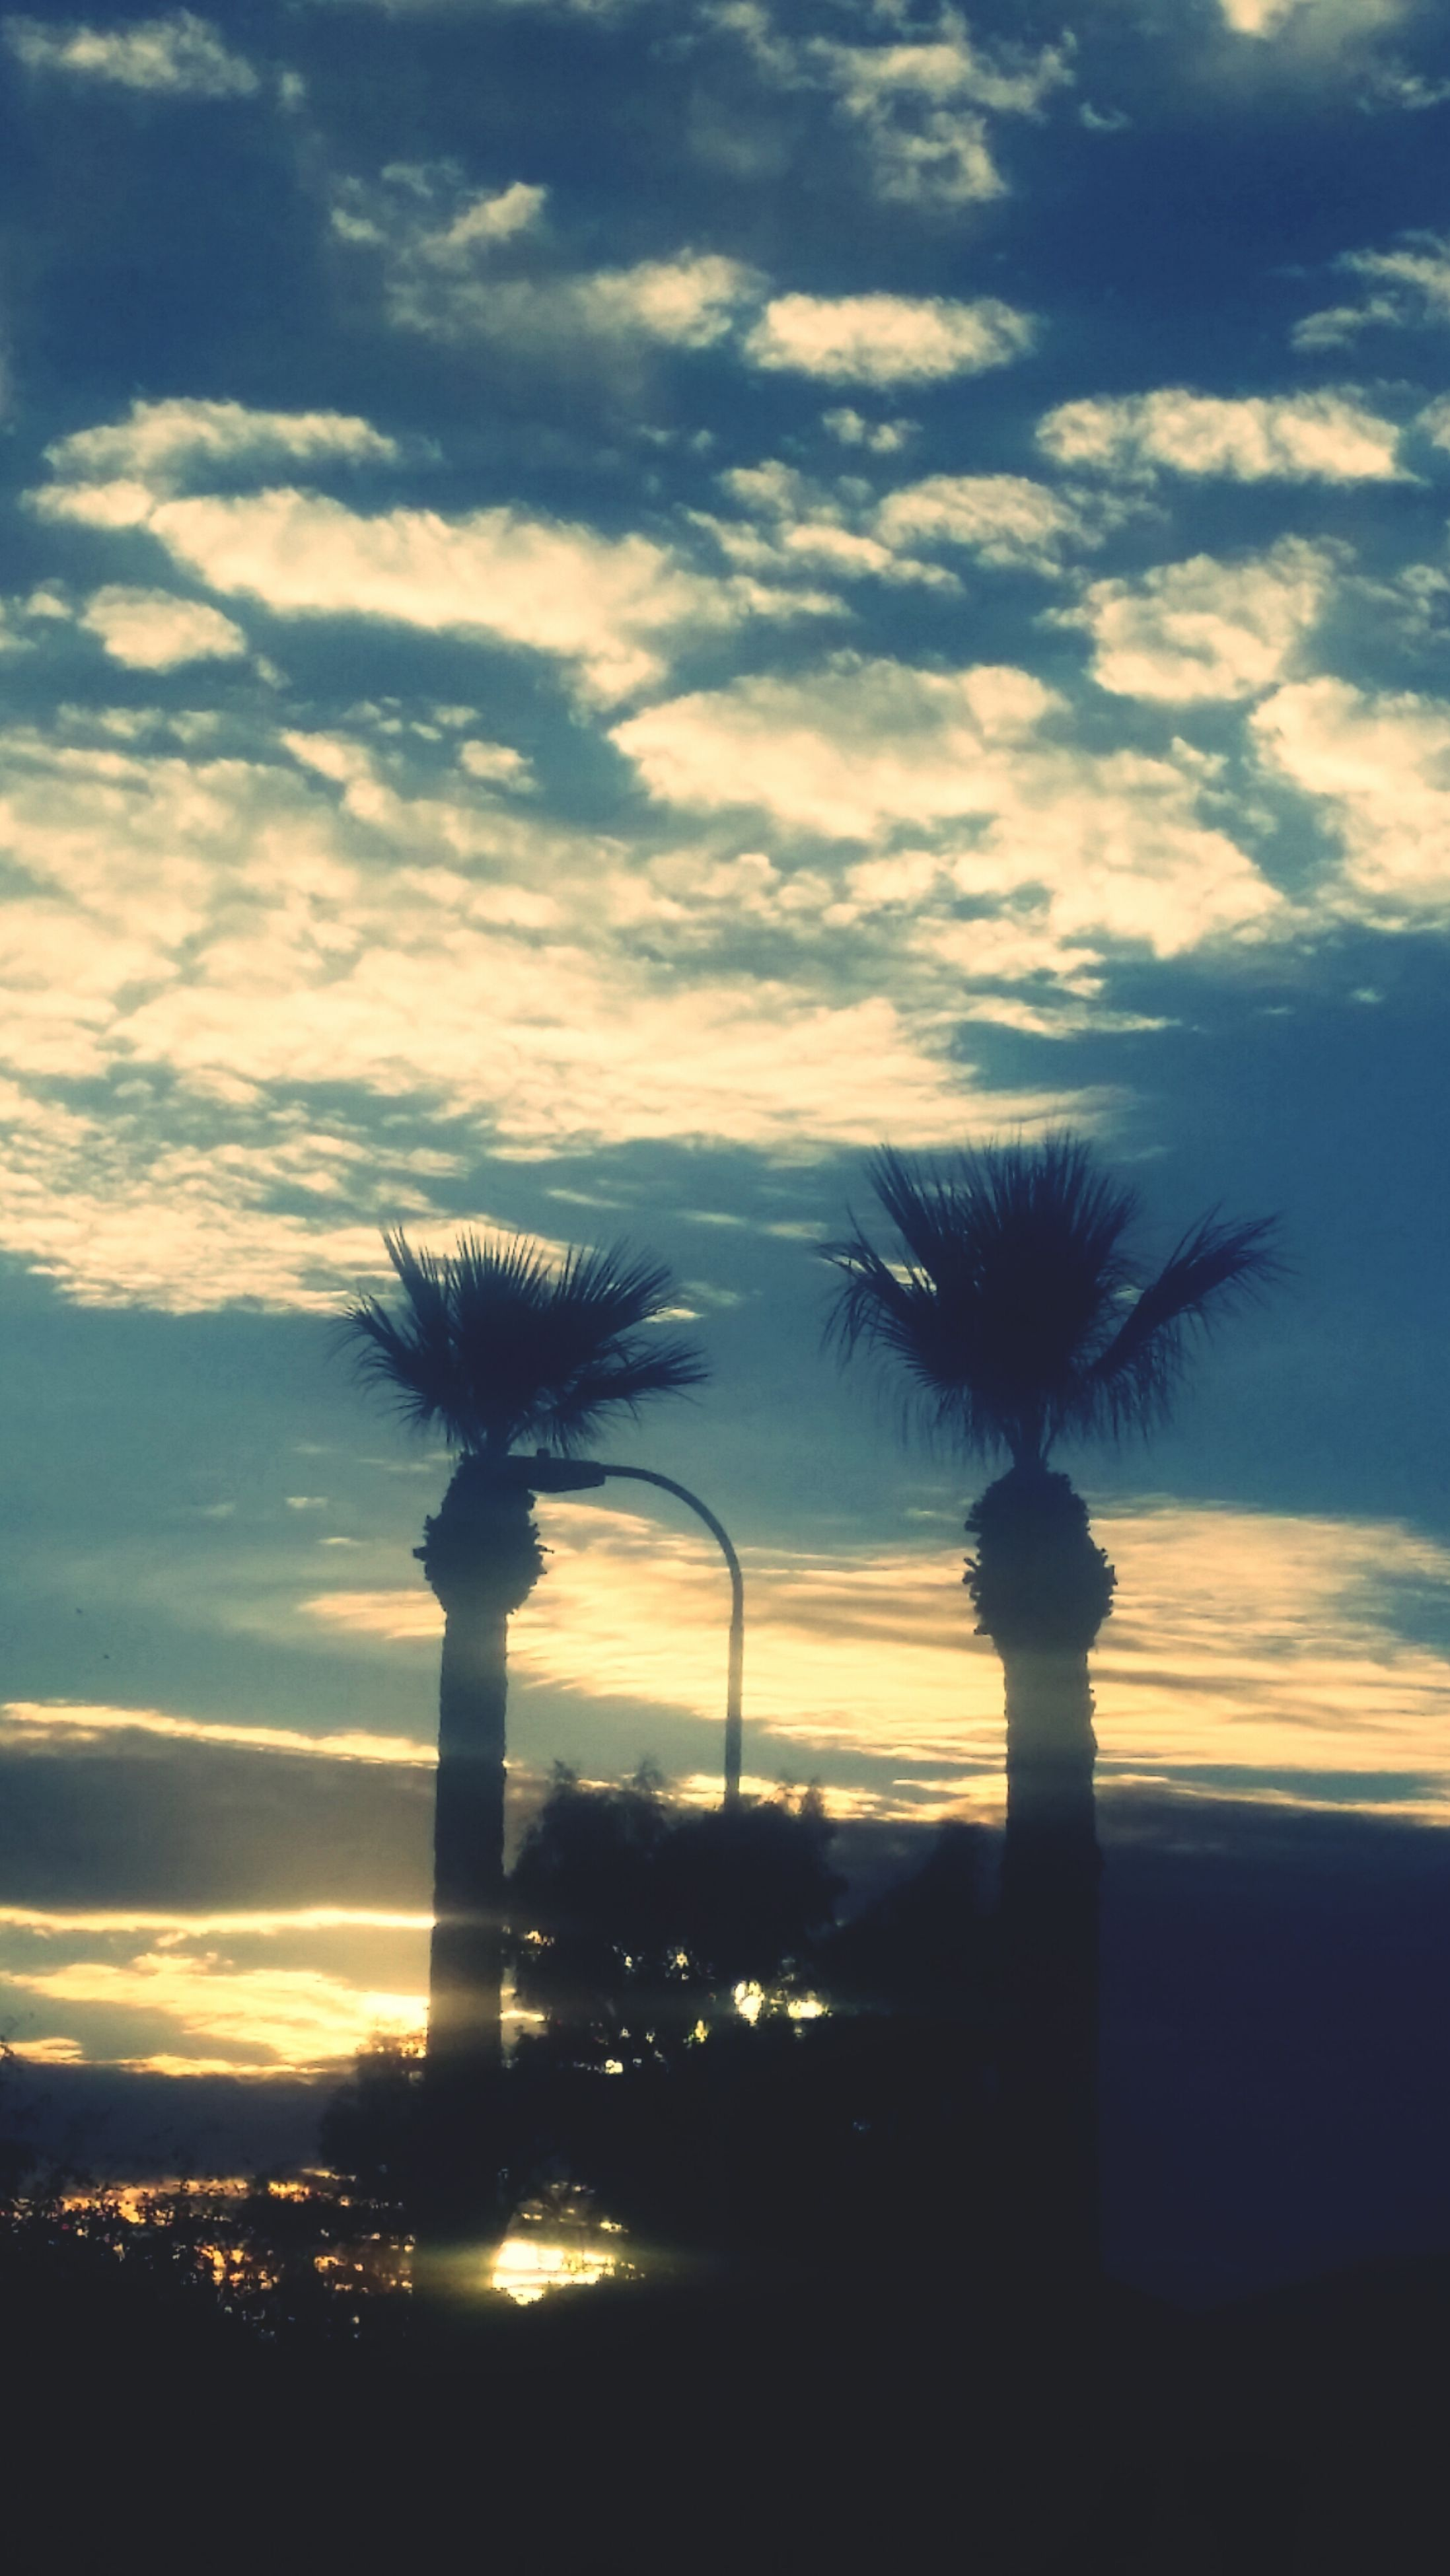 sky, silhouette, sunset, cloud - sky, palm tree, tree, nature, cloud, beauty in nature, cloudy, low angle view, dusk, growth, built structure, scenics, tranquility, no people, outdoors, architecture, tranquil scene